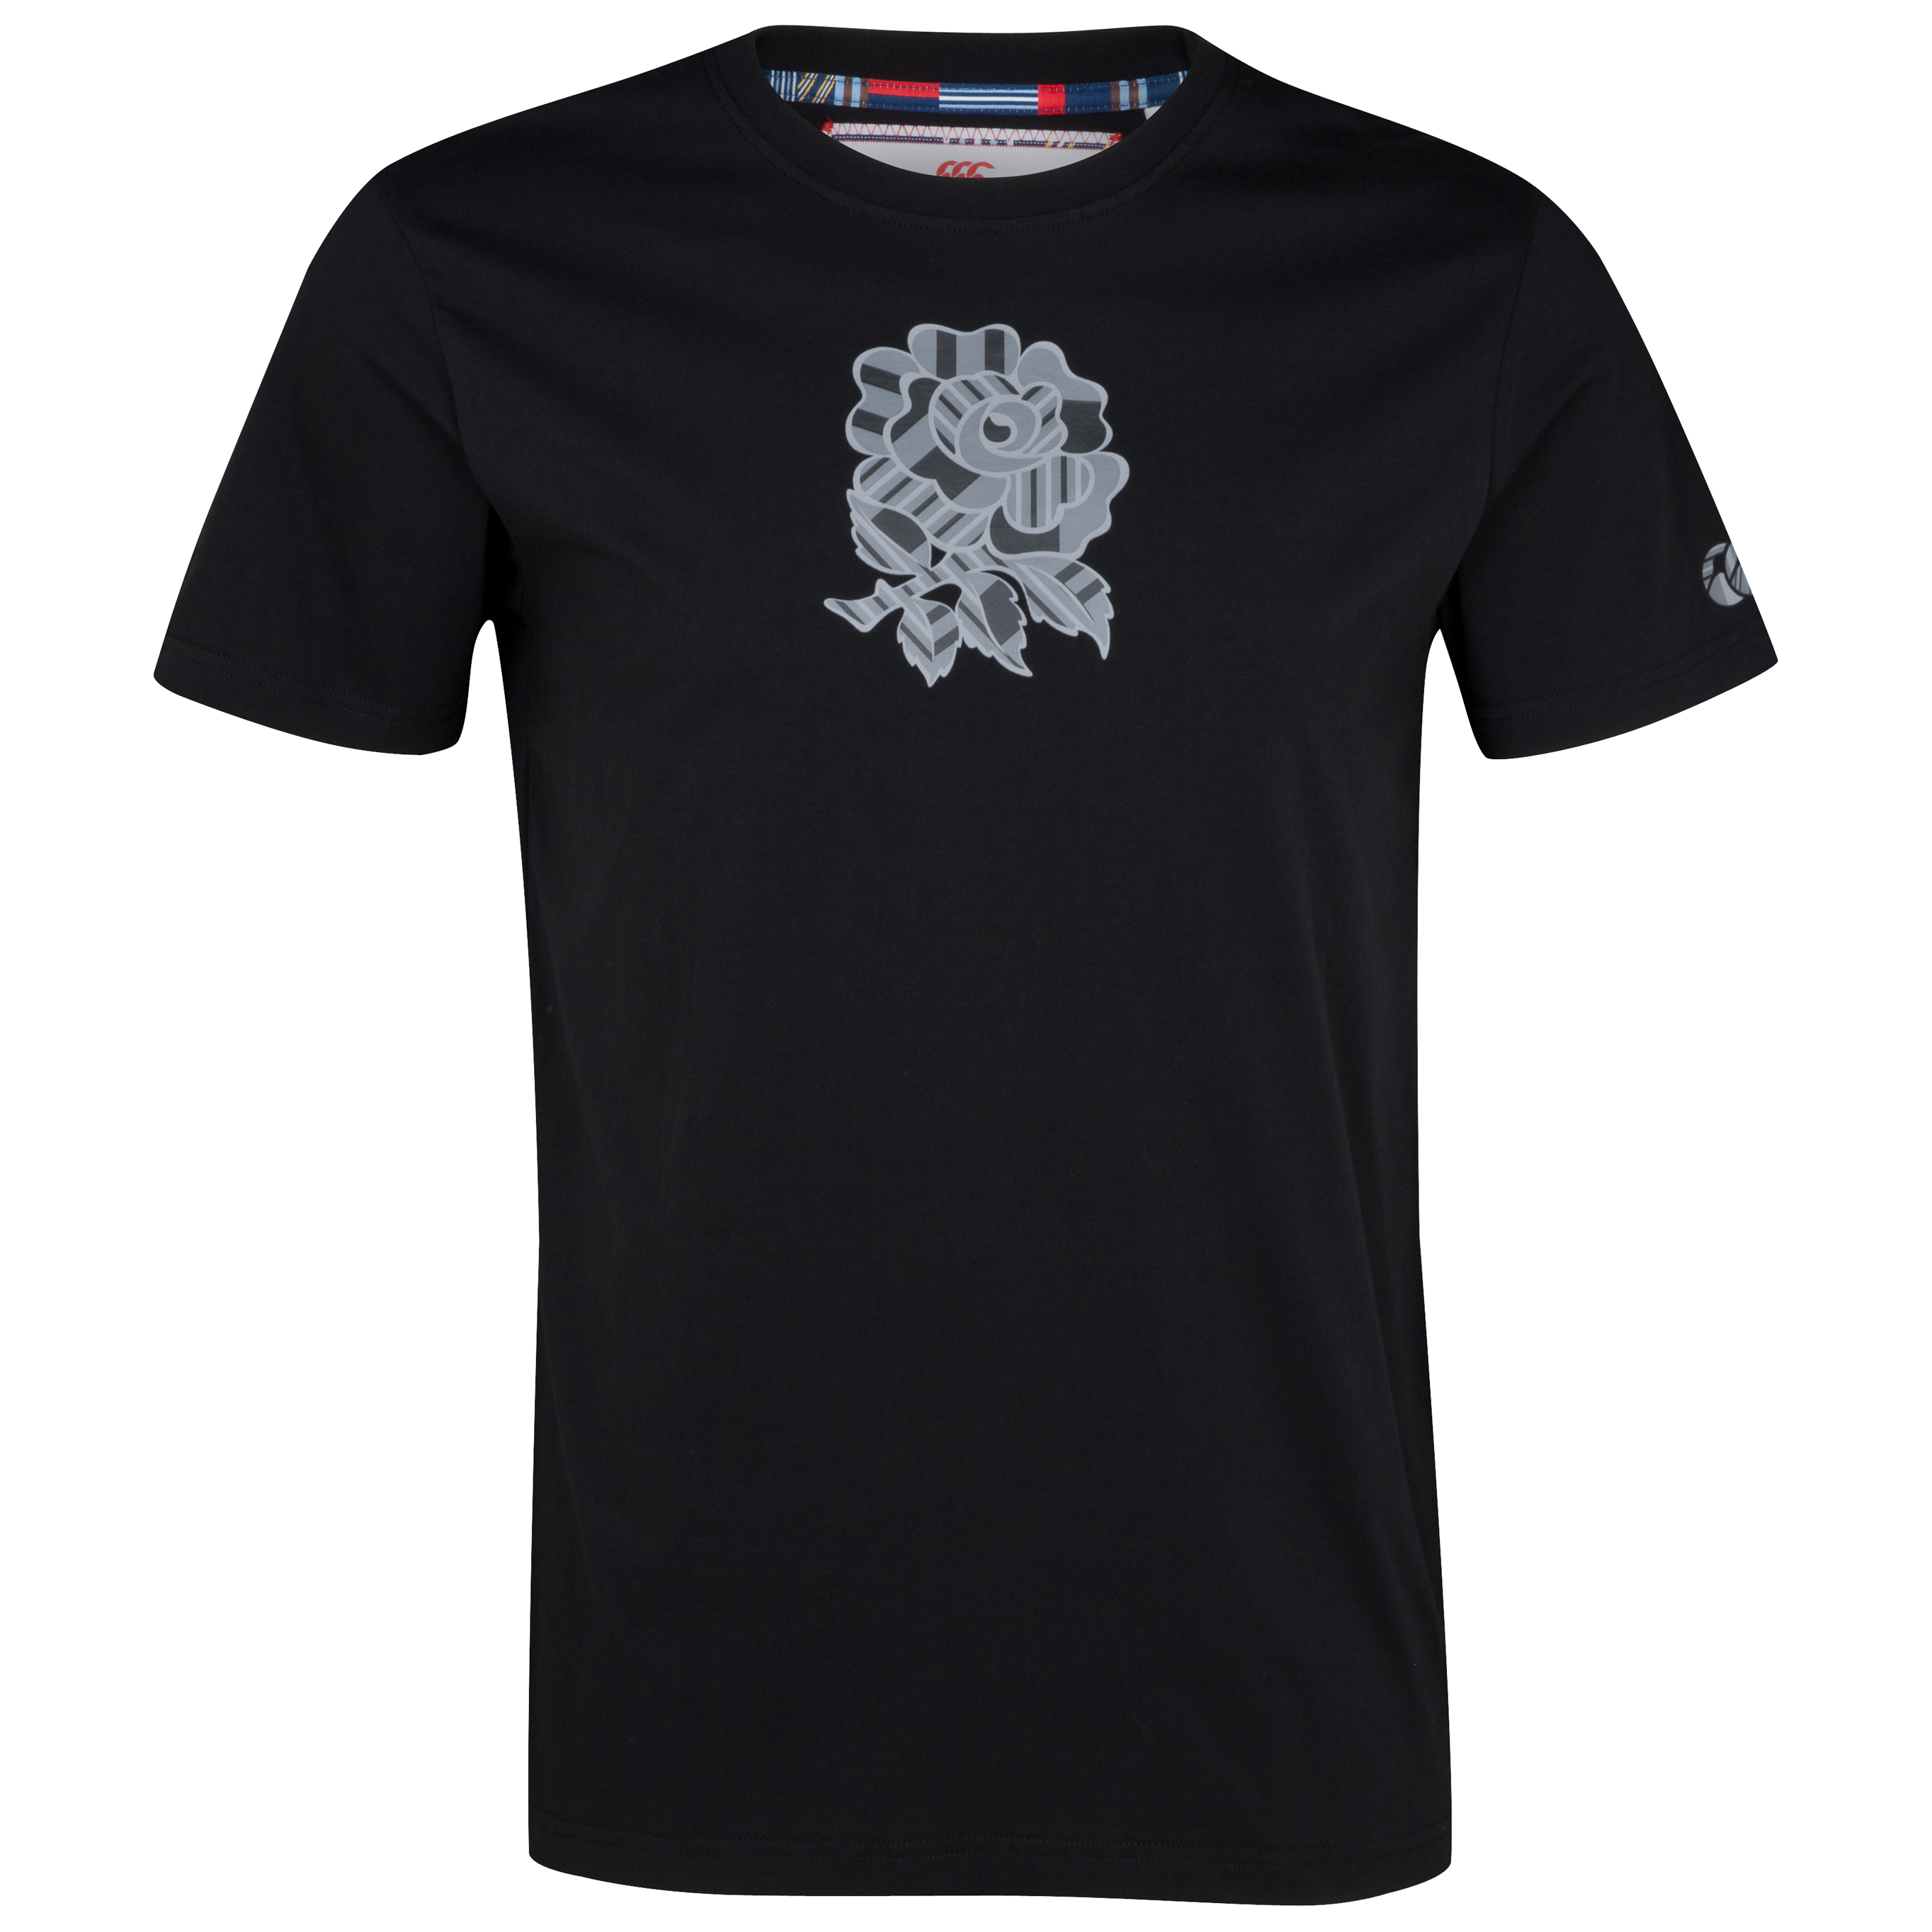 England Uglies Tonal Cotton T-Shirt - Black